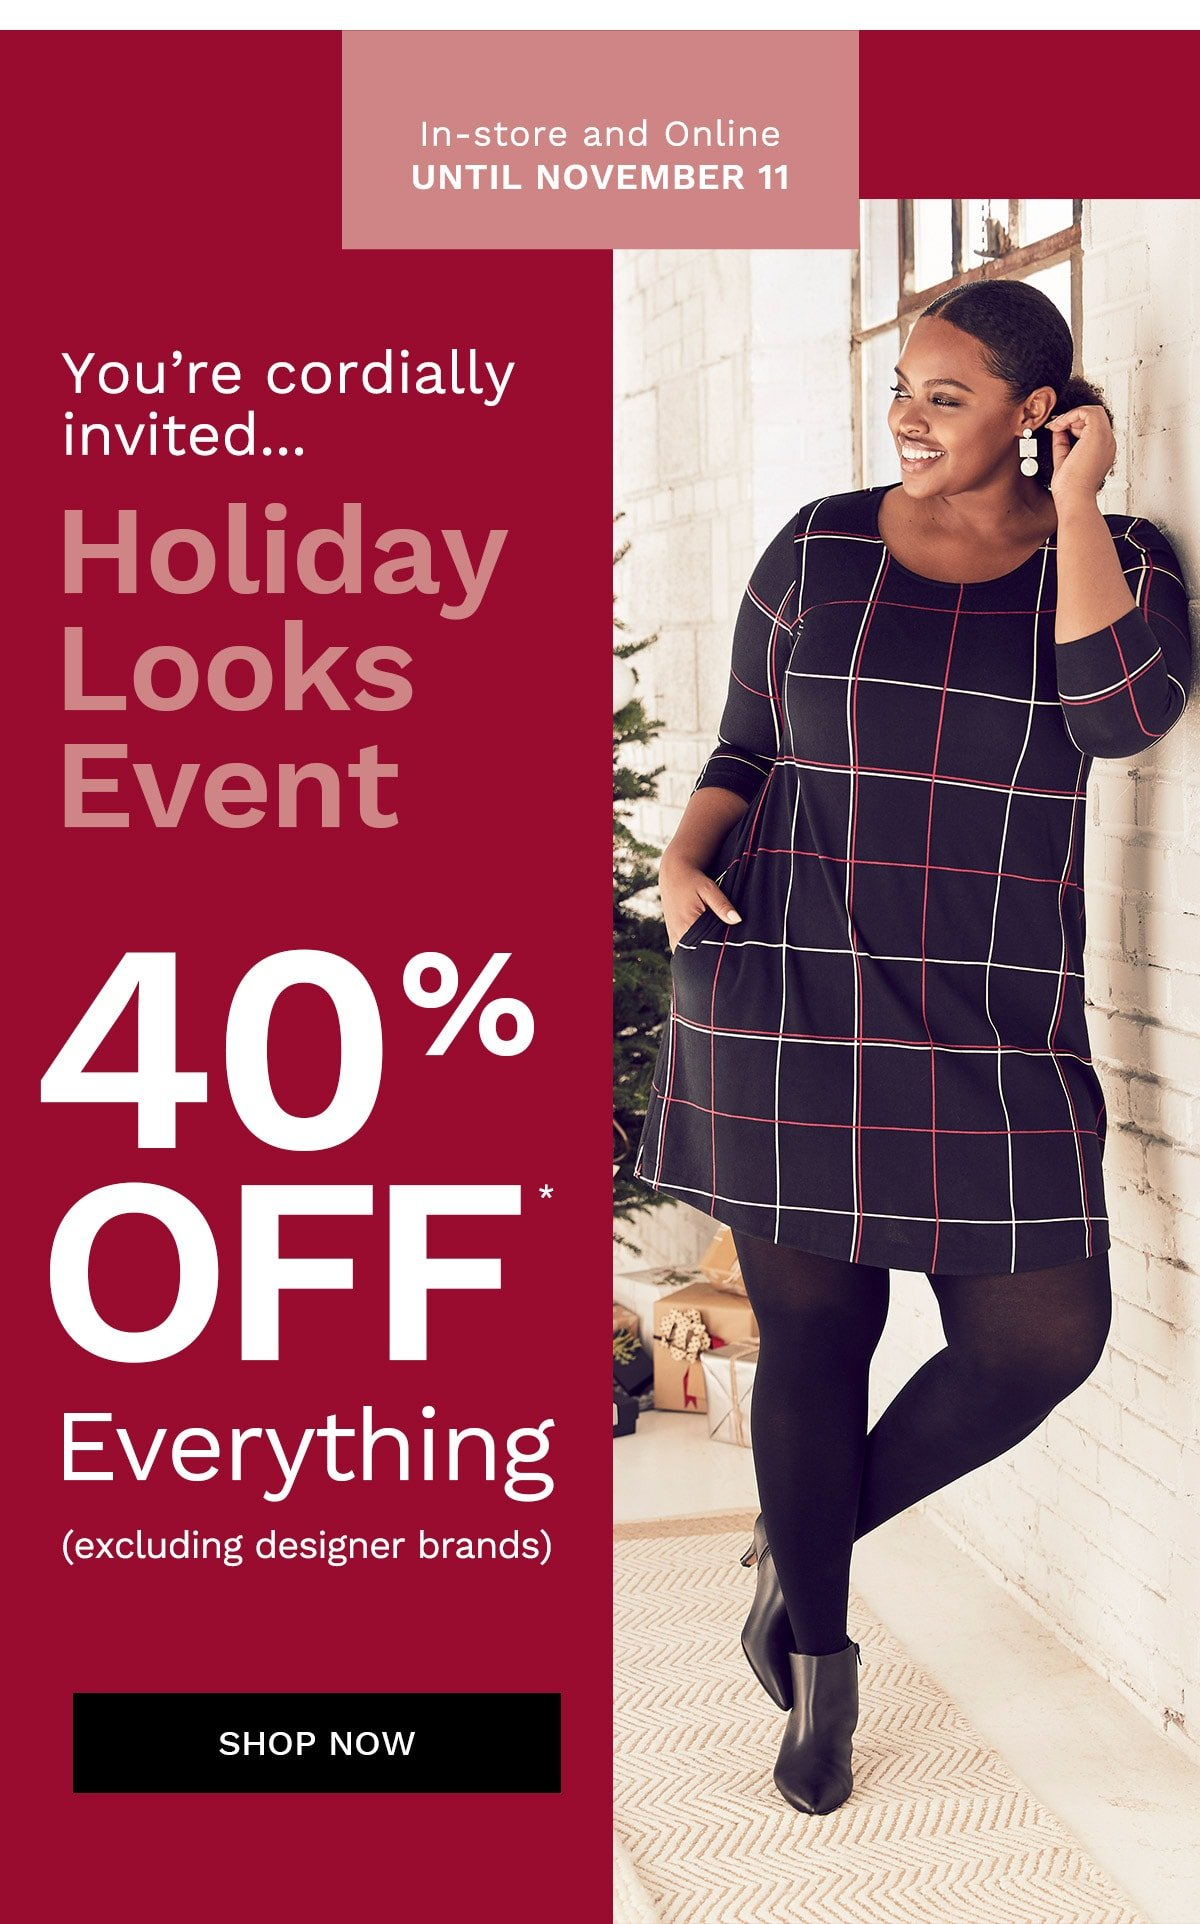 The Holiday Looks Event 40% off*